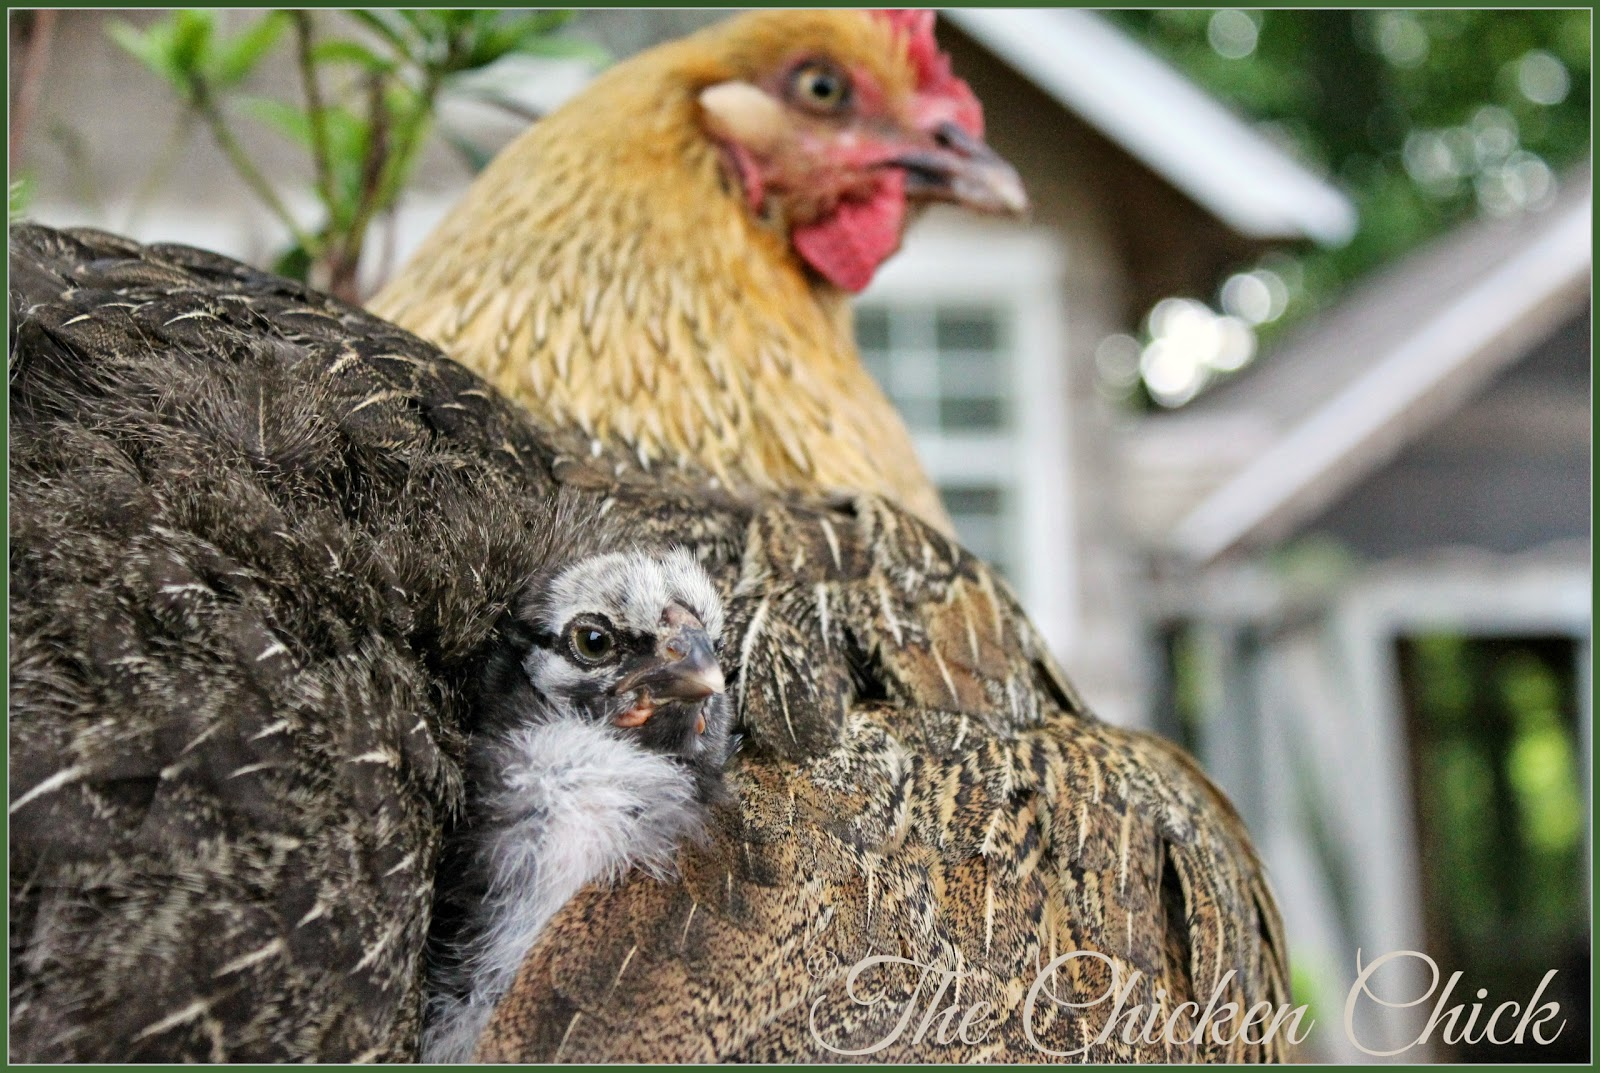 Marans hen with adopted chick.